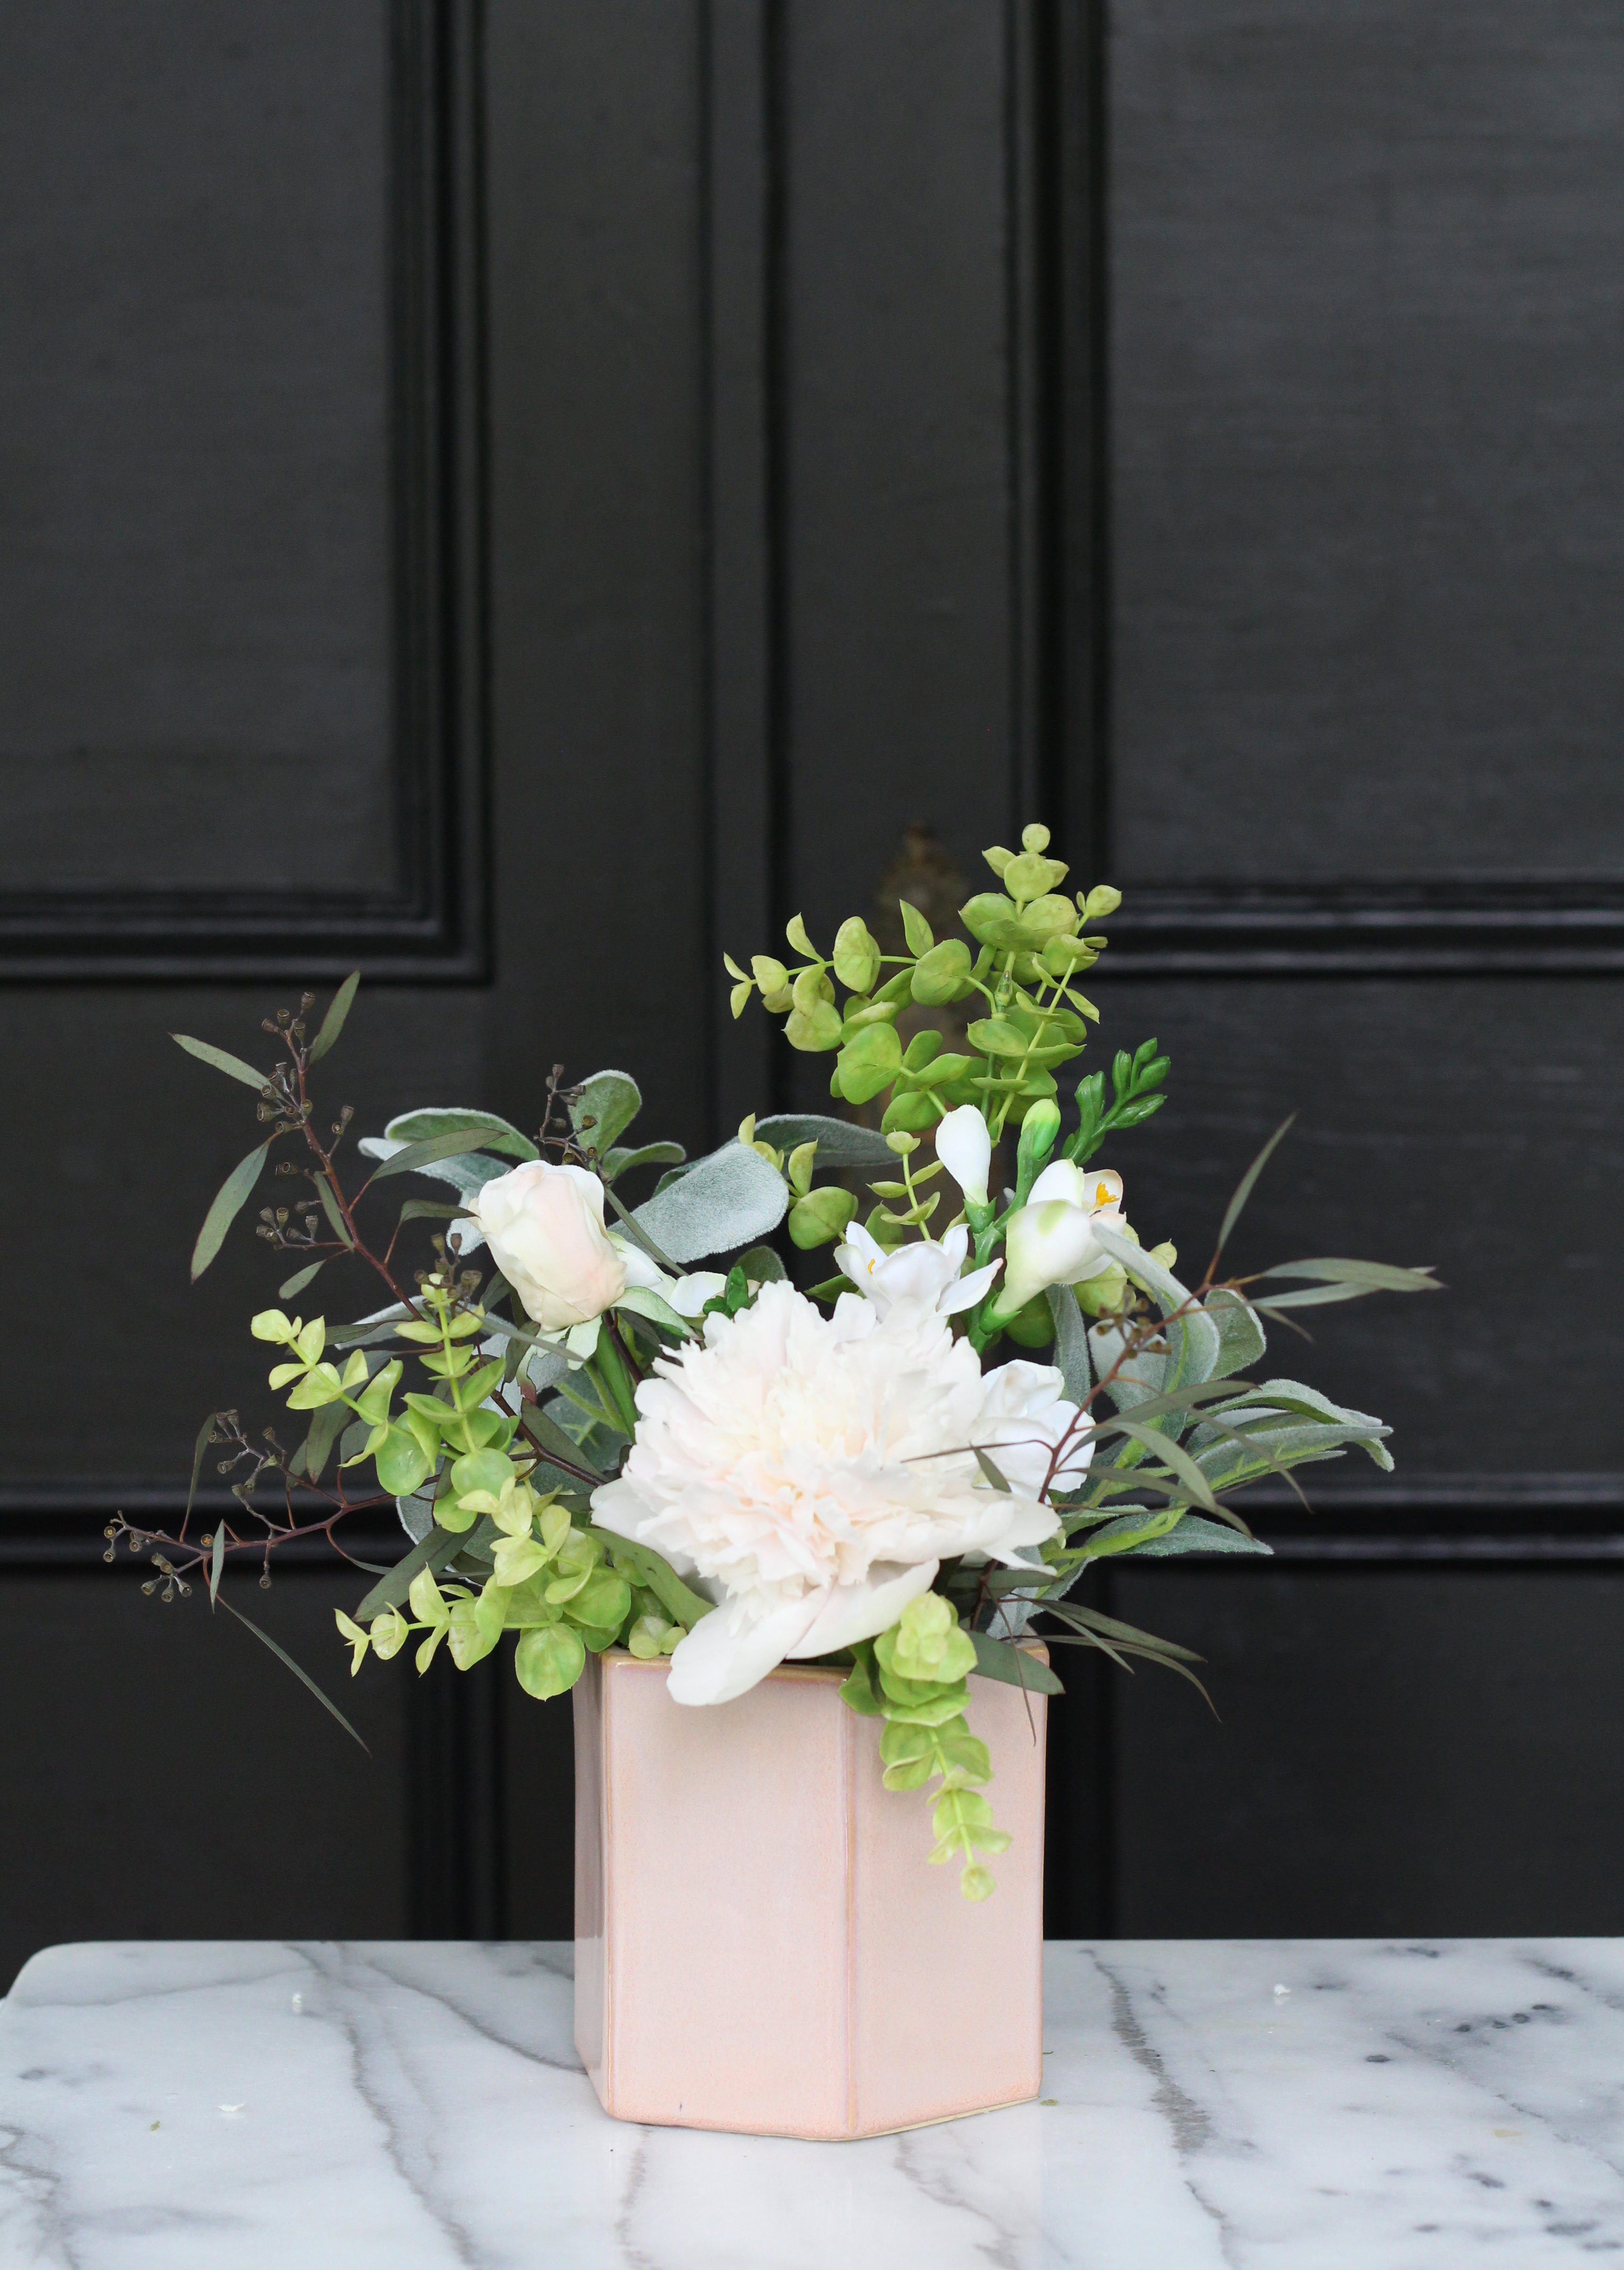 Faux Real Floral Design series on Lily & Val Living. Combine fresh and faux blooms to create beautiful flower arrangements